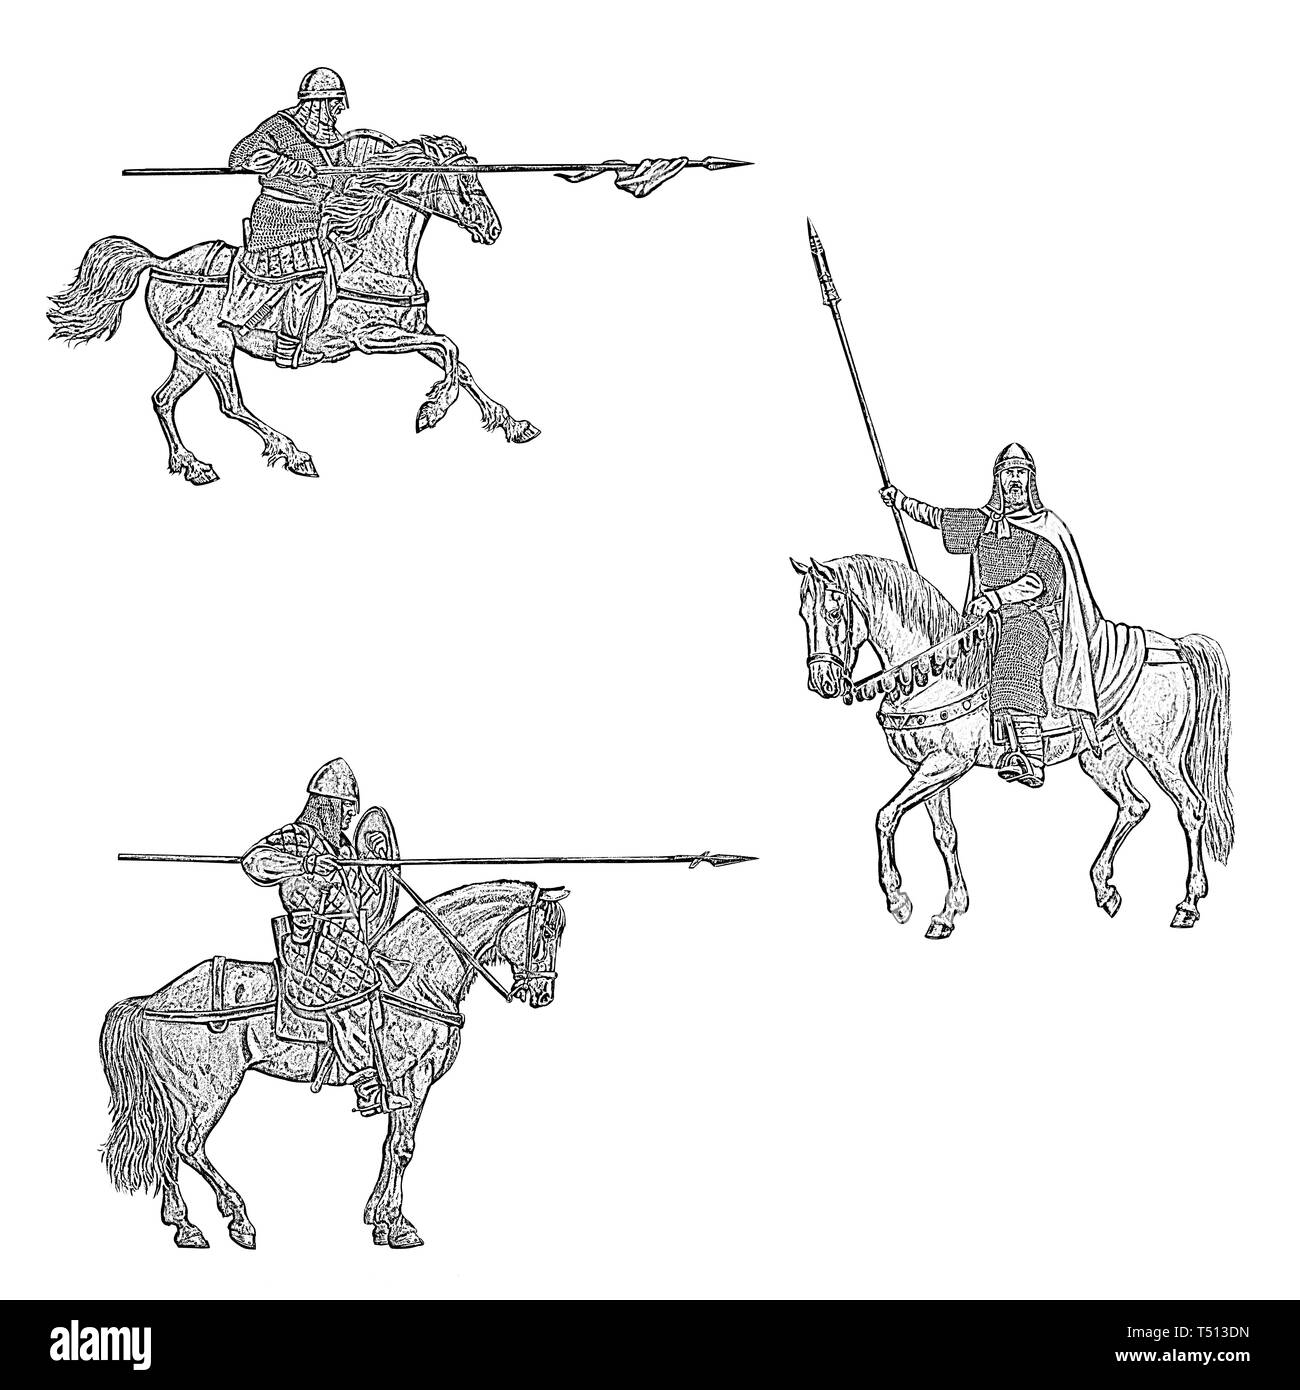 Set of 3 medieval mounted crusaders. Medieval mounted knights illustration. Knight on horseback.  Black and white digital drawing. - Stock Image